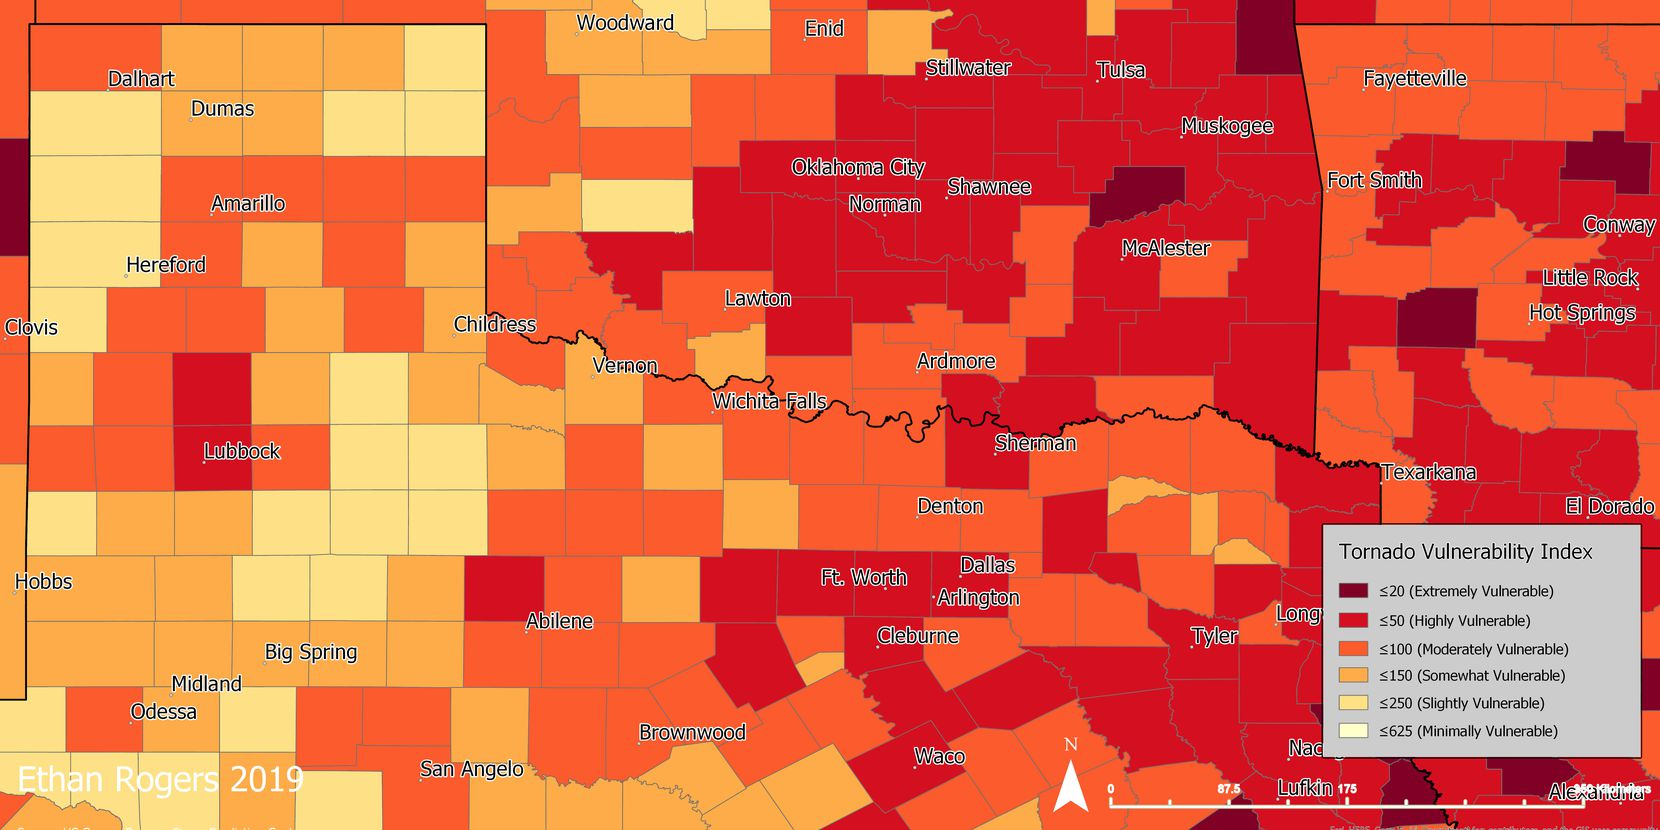 This map shows which counties in North Texas are most vulnerable to tornadoes.